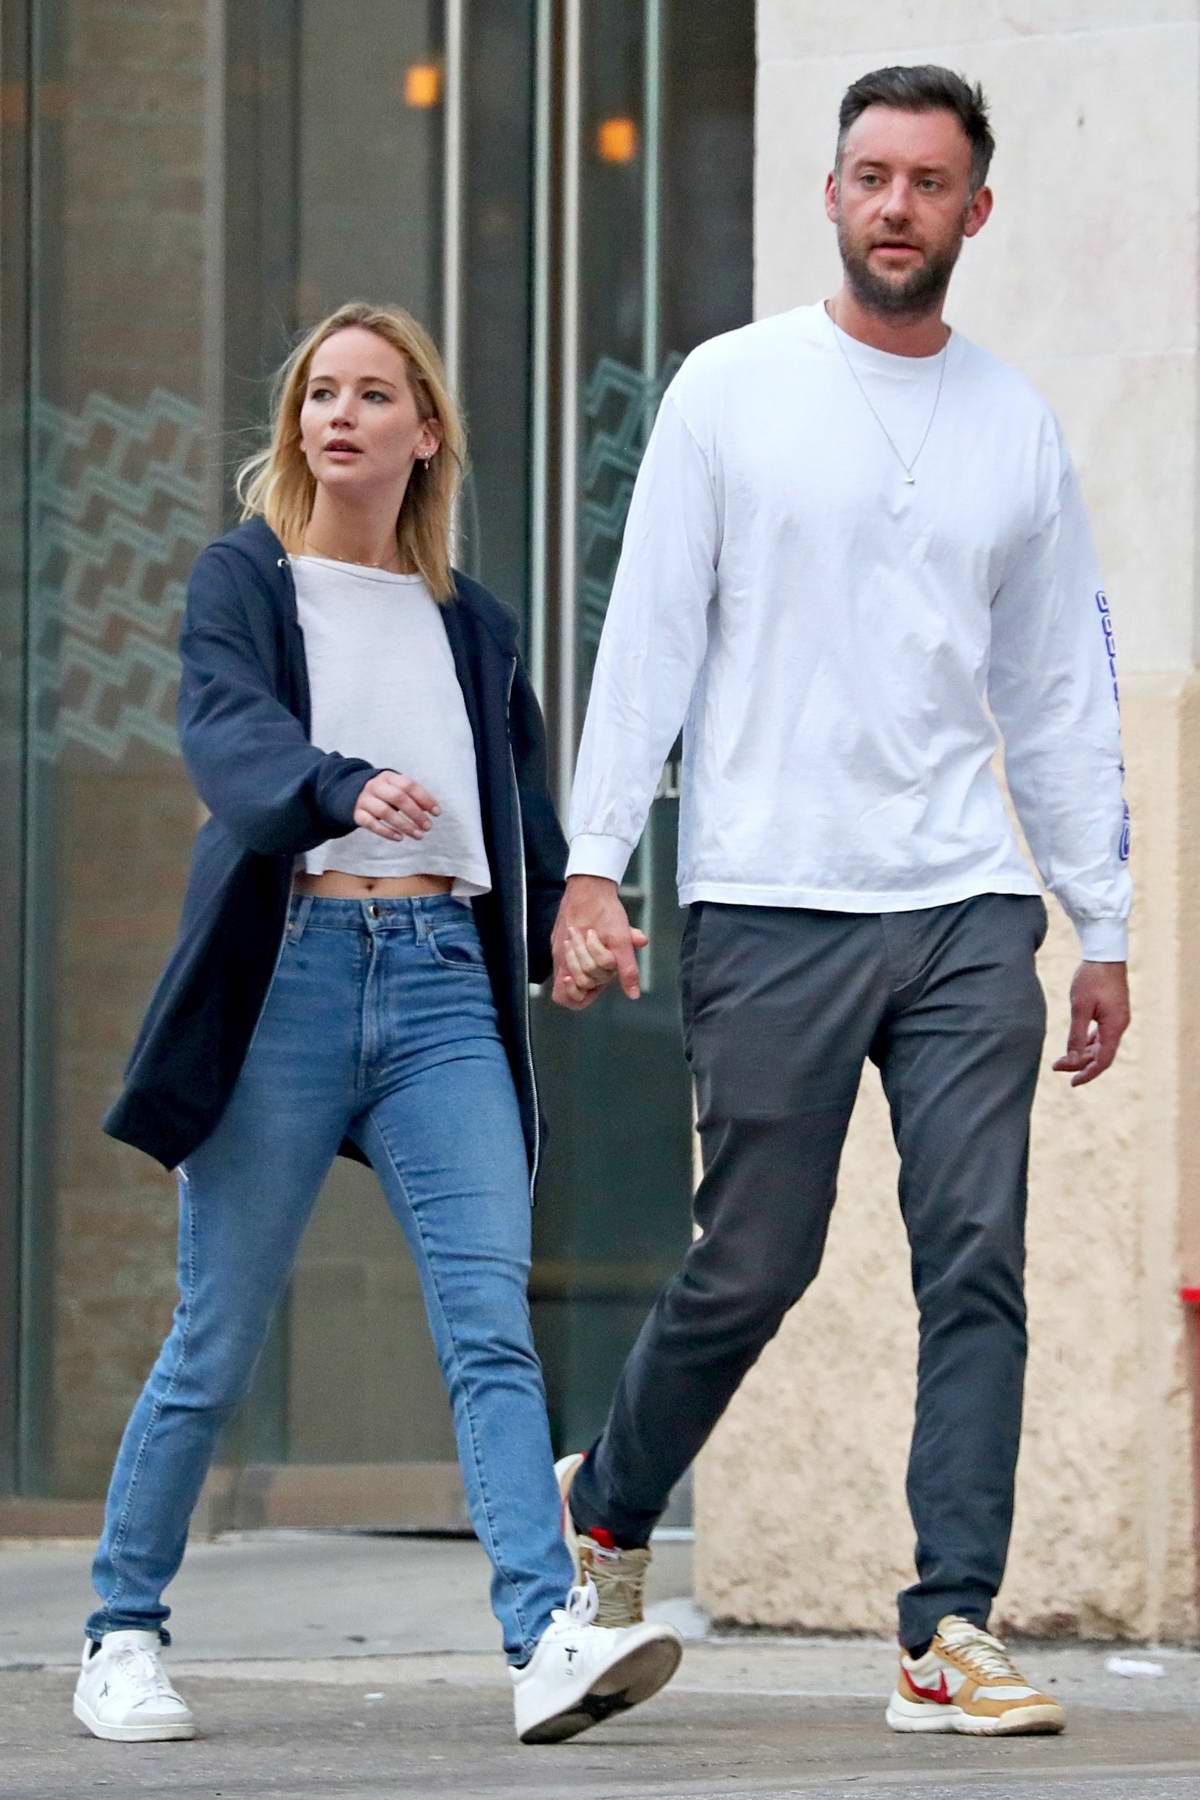 Jennifer Lawrence and Cooke Maroney stops by for matcha while out on stroll in New York City